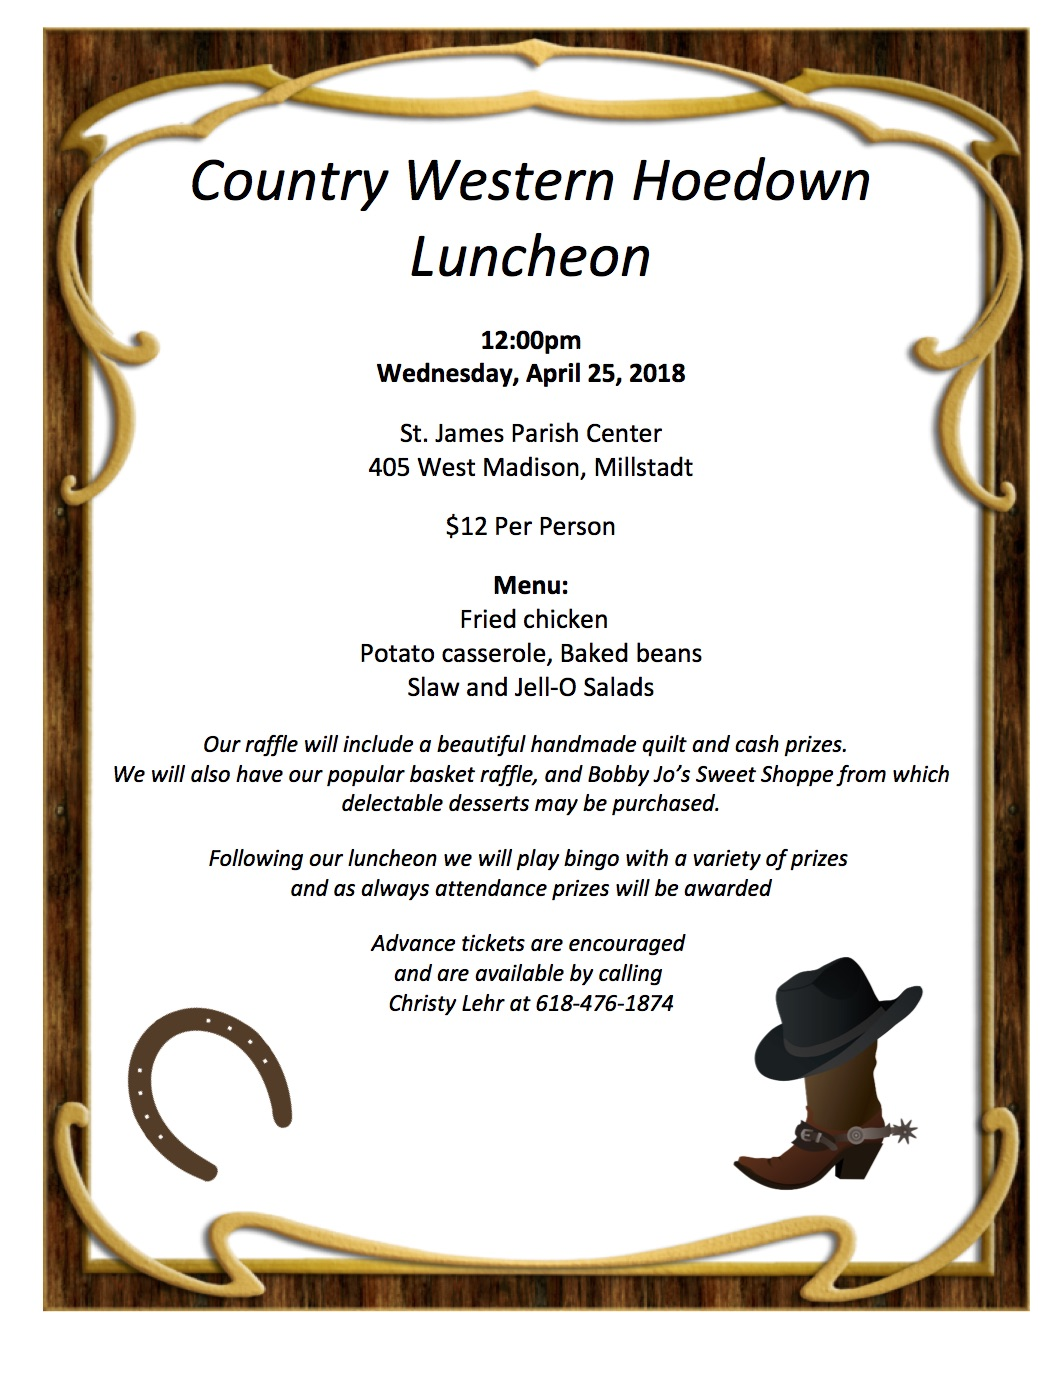 Country Western Hoedown Luncheon - Millstadt, IL News